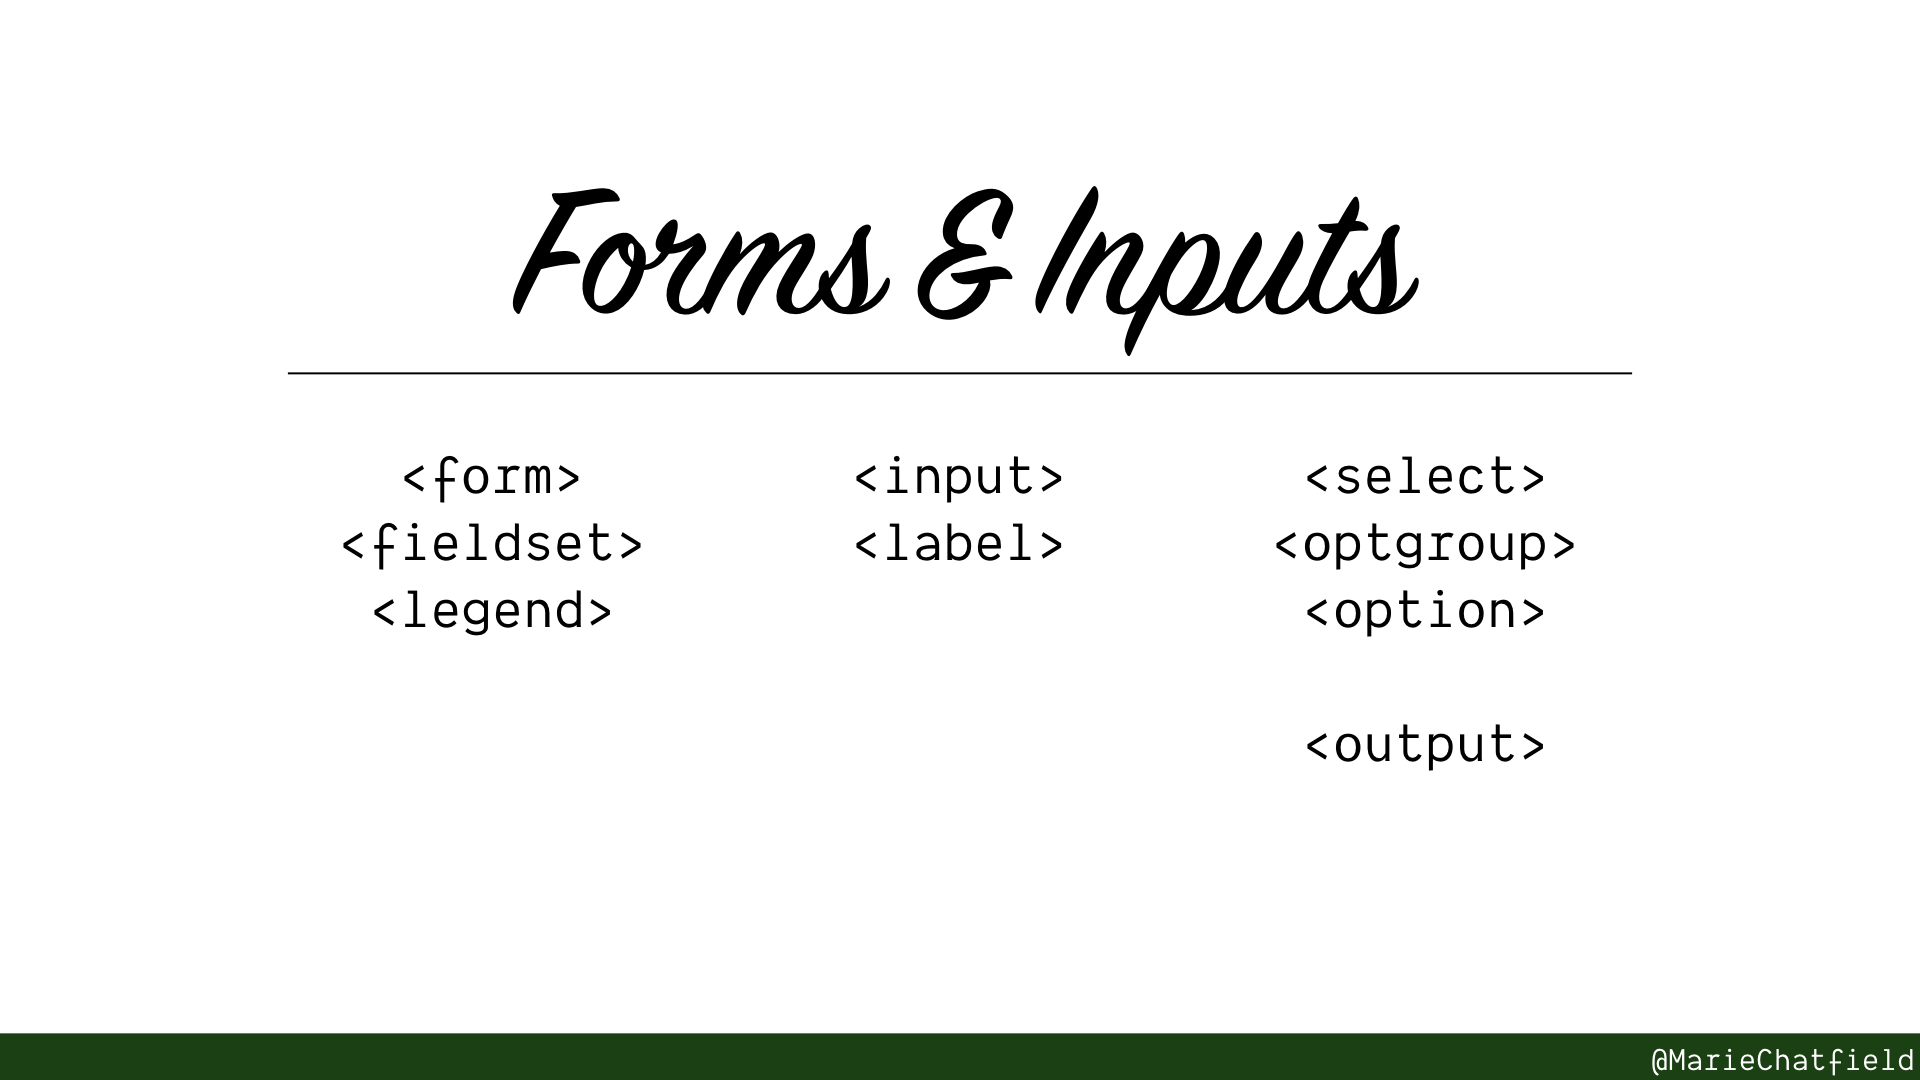 Slide of Forms & Inputs with HTML elements listed